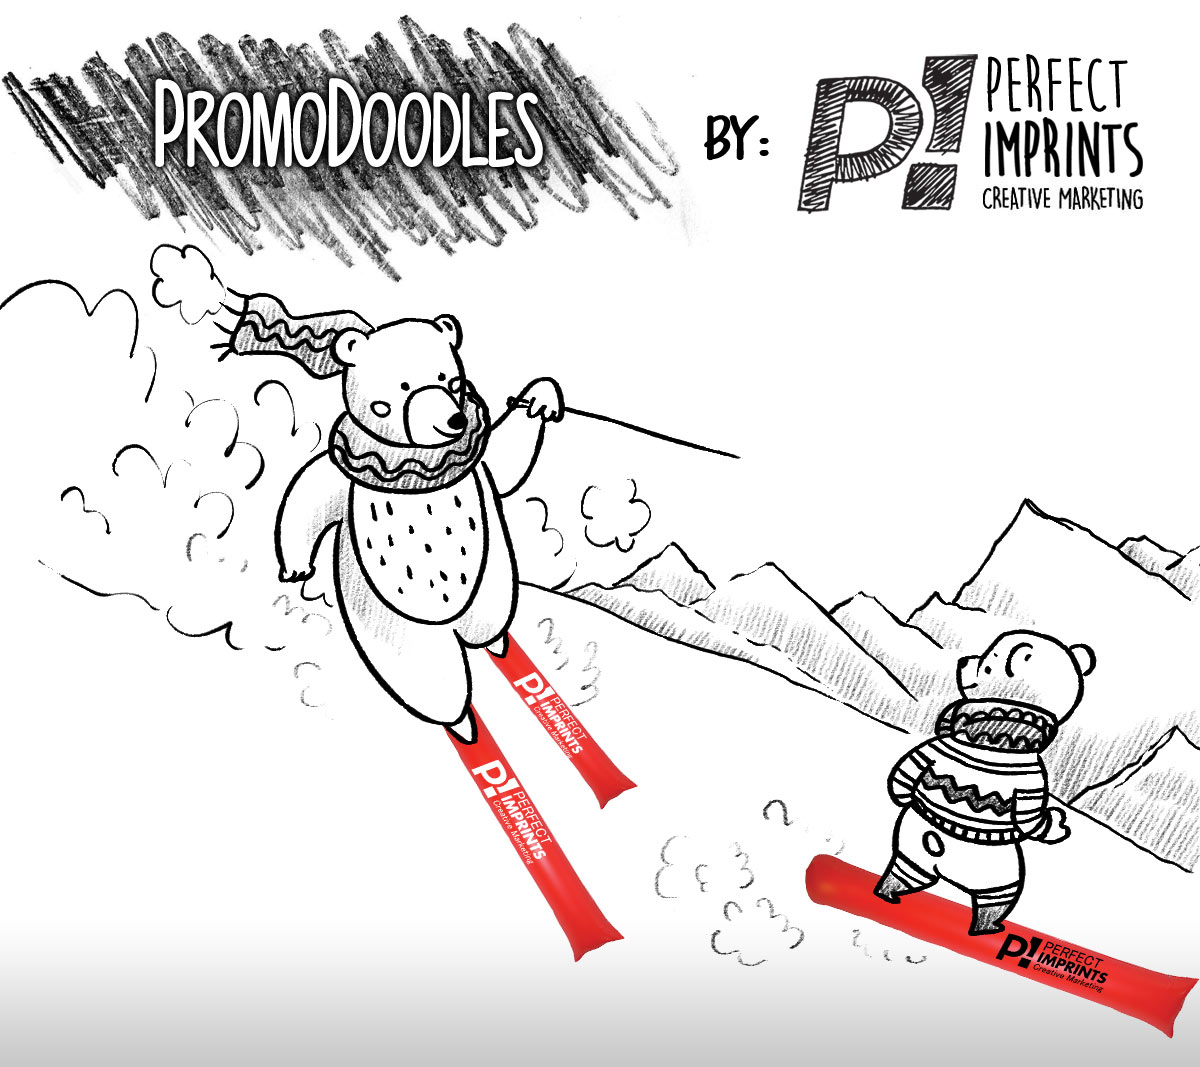 PromoDoodles by Perfect Imprints - Skiing with Thundersticks